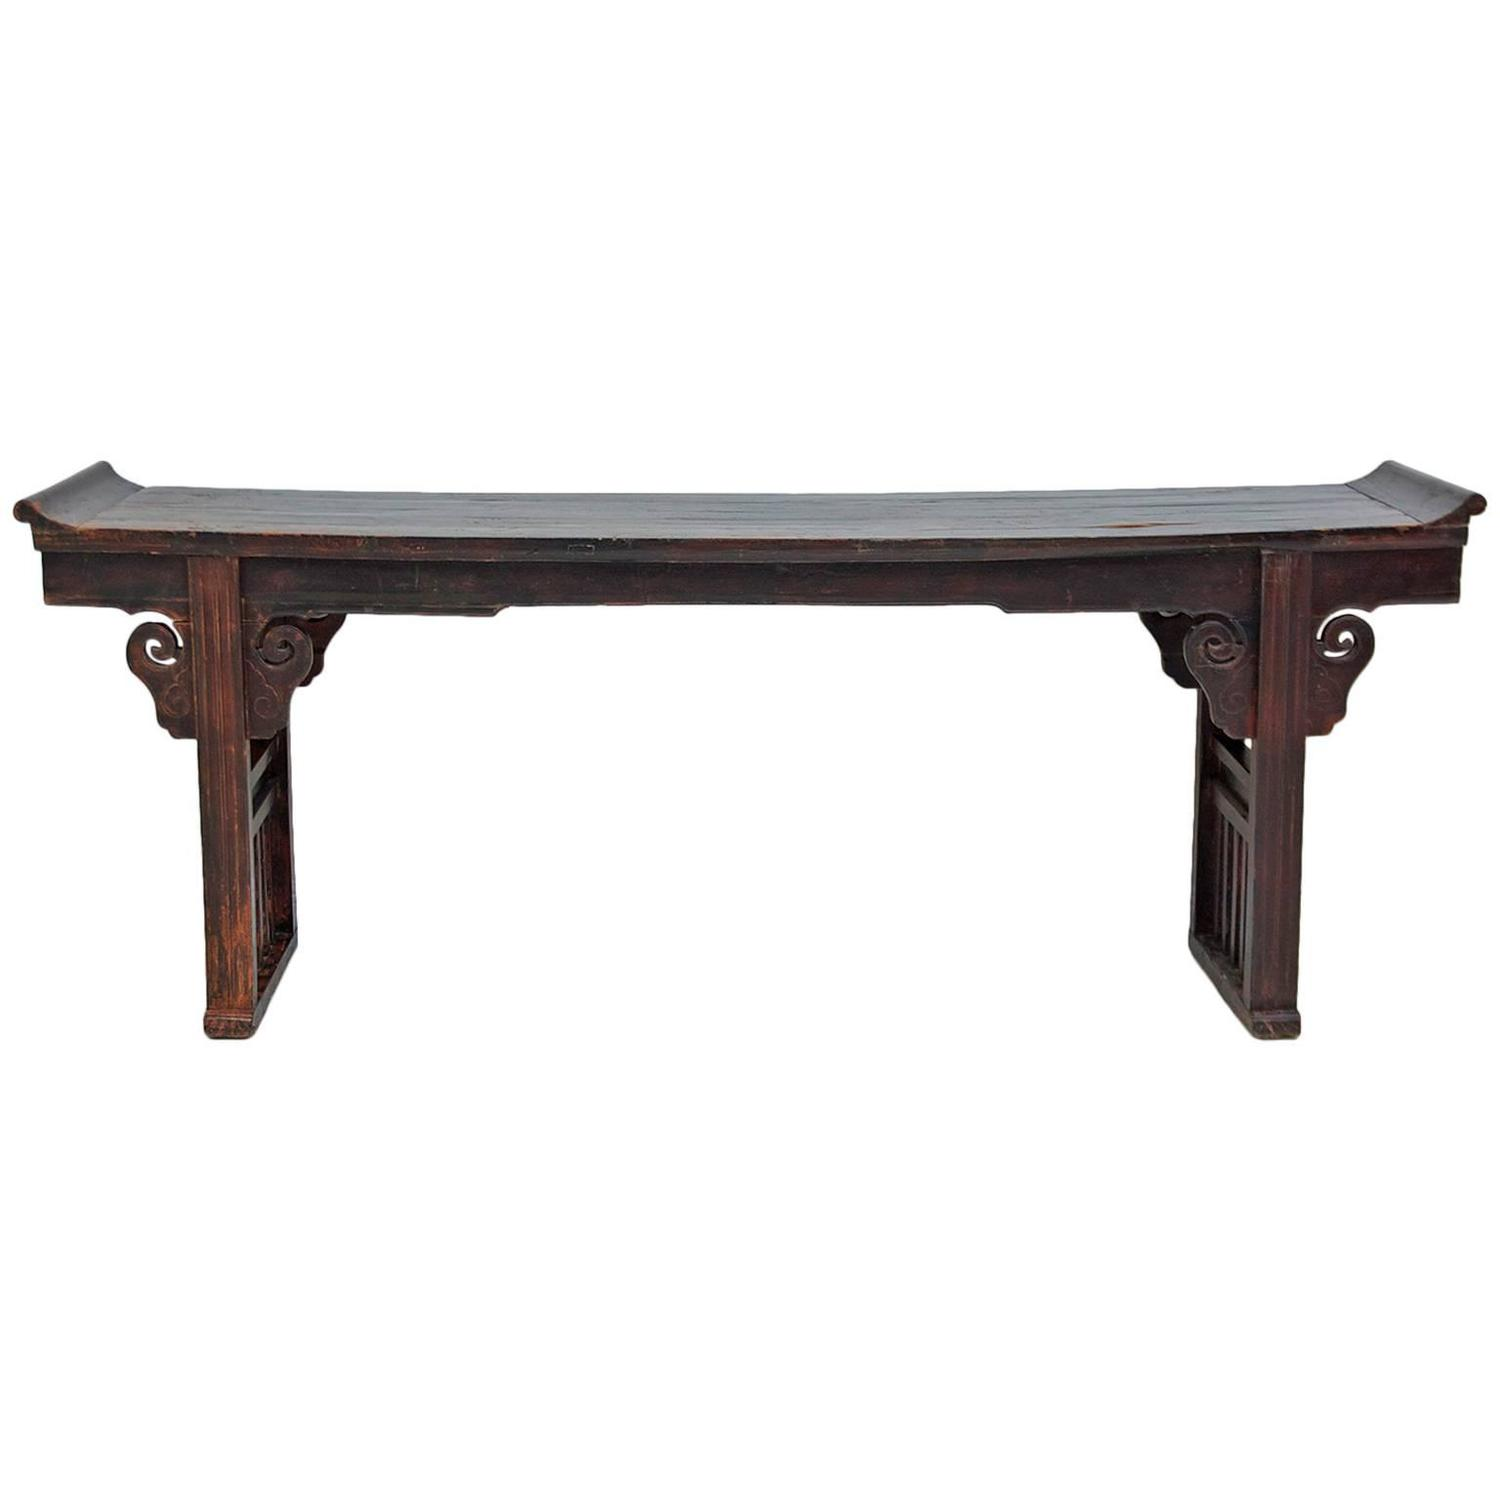 Early 19th Century Chinese Ming Form Altar Table in Elm Wood